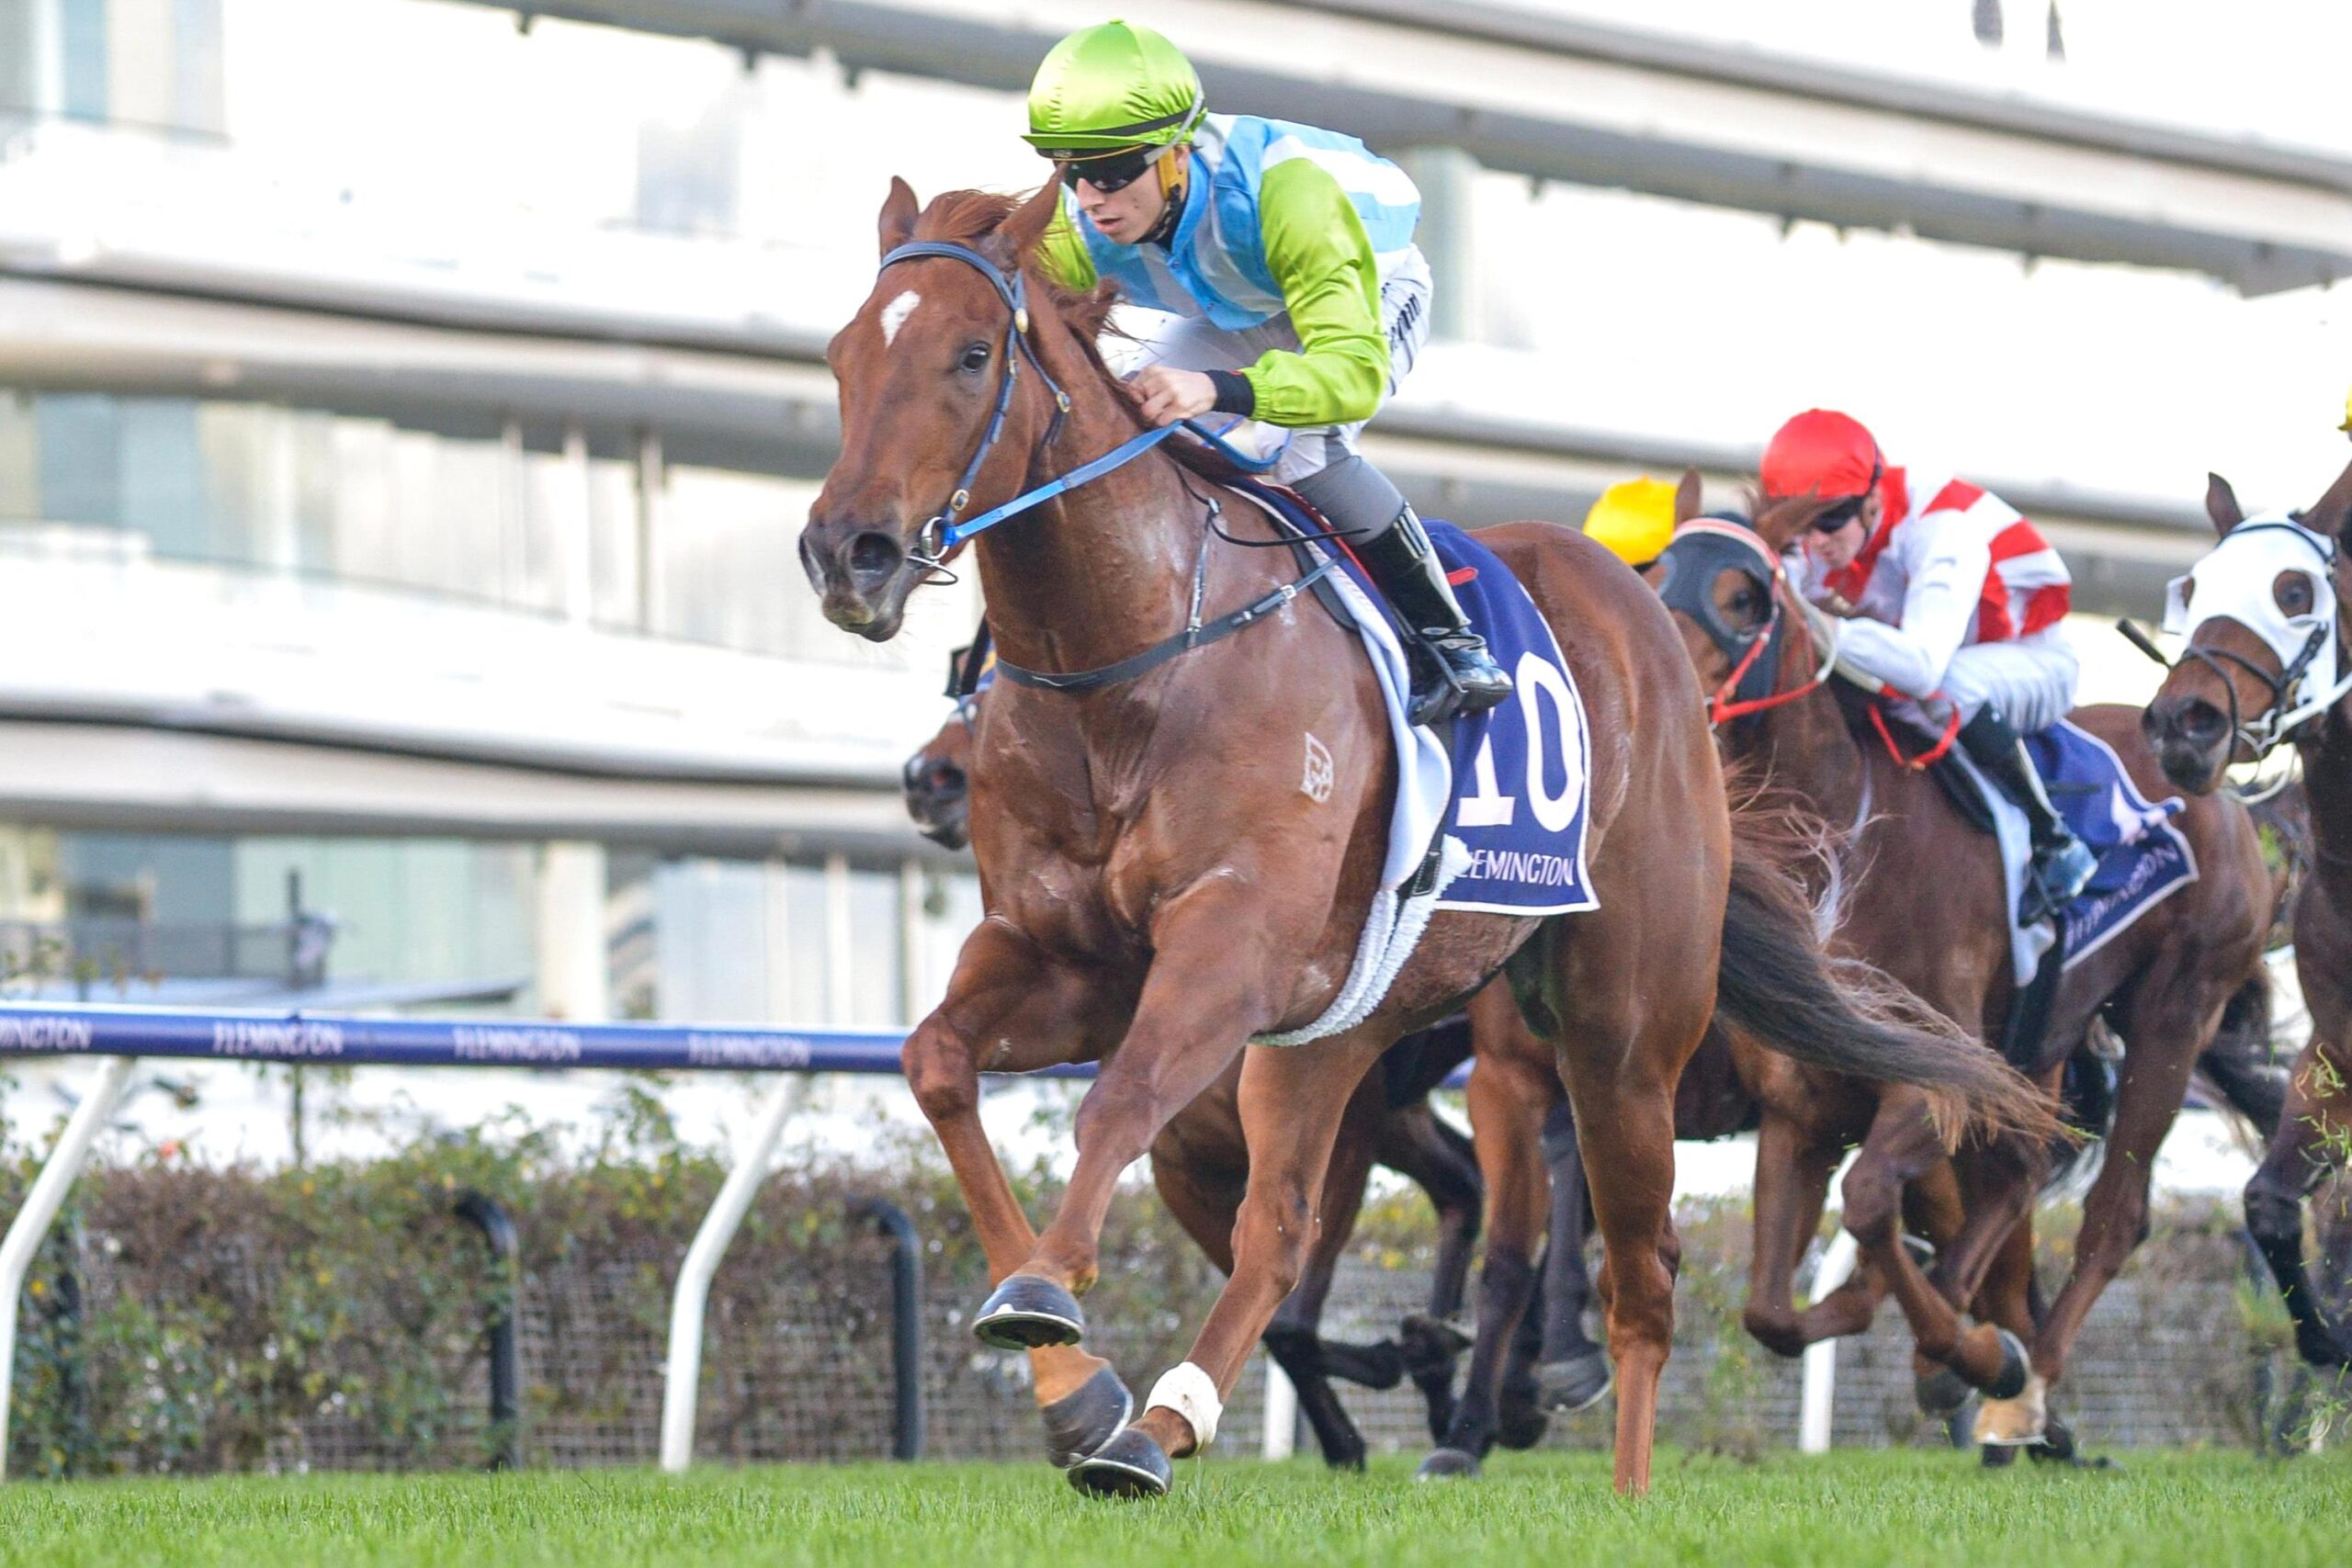 Front Page wins in dynamic fashion at Flemington.